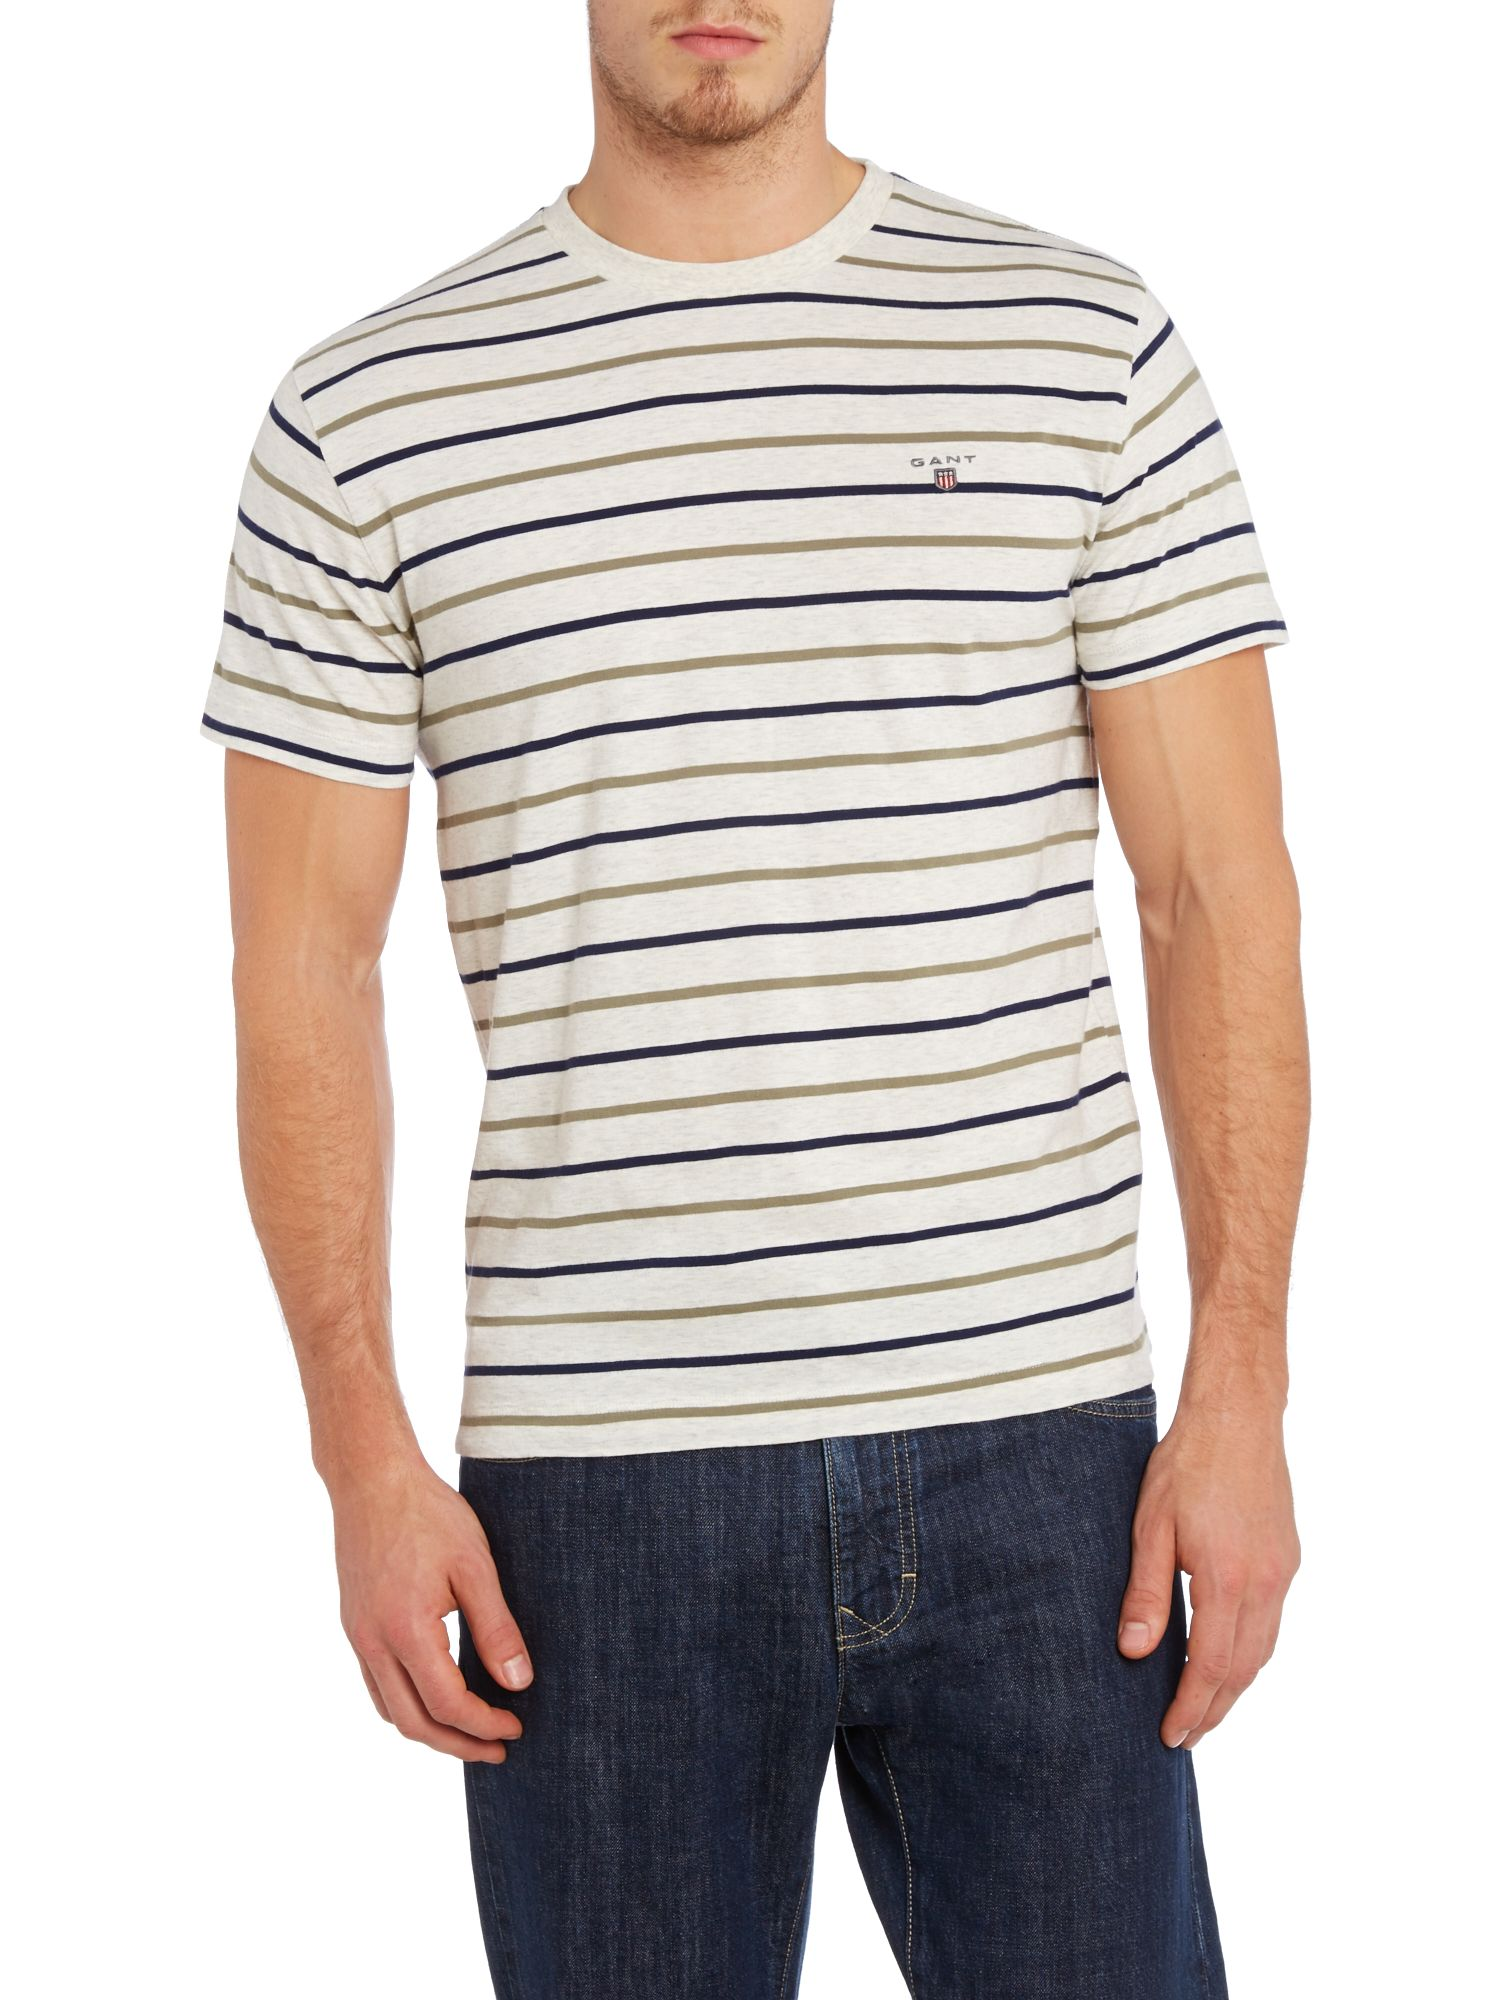 3 Colour bretton stripe t shirt